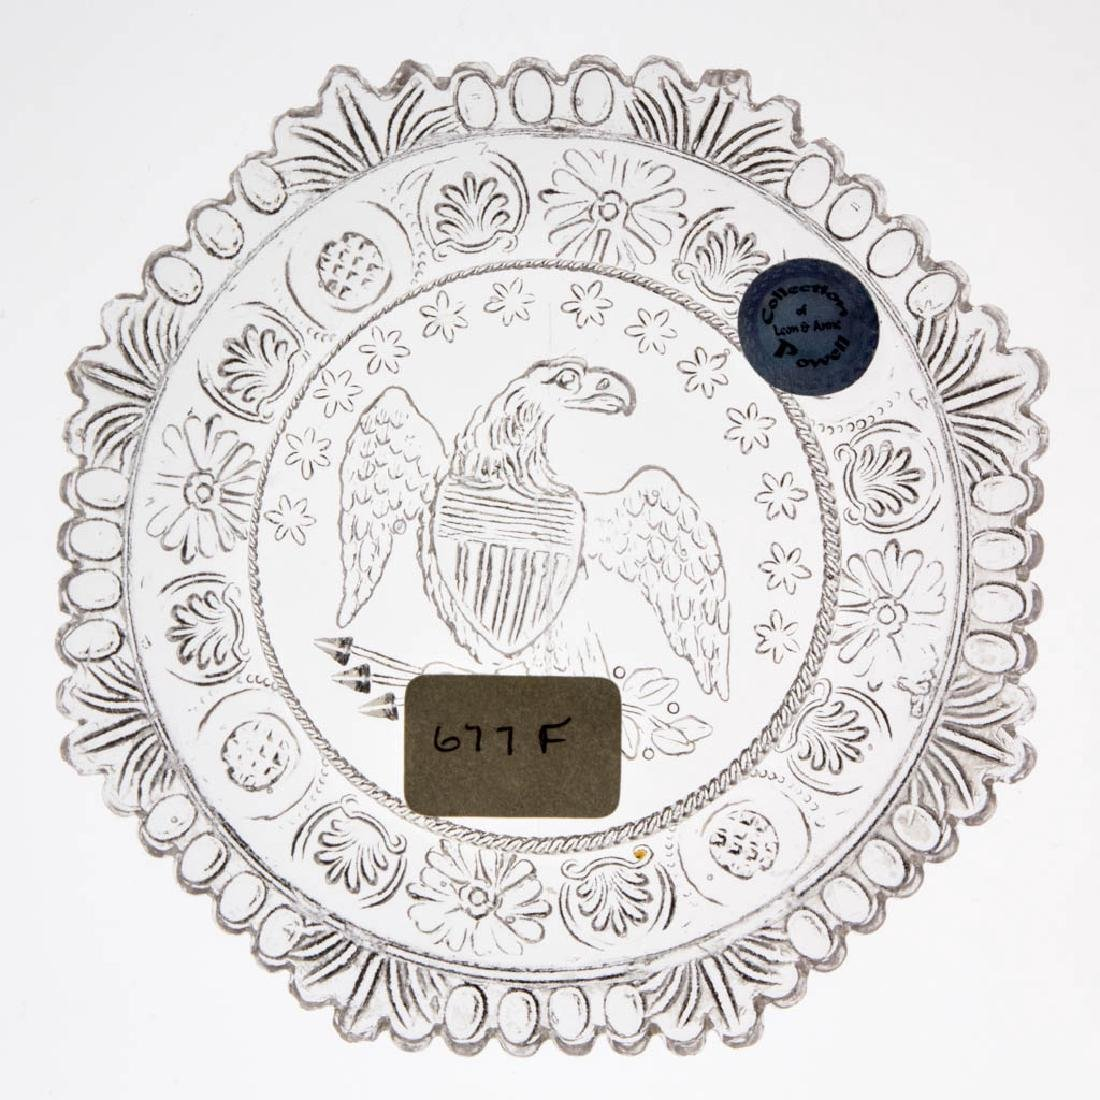 LEE/ROSE NO. 677-F CUP PLATE